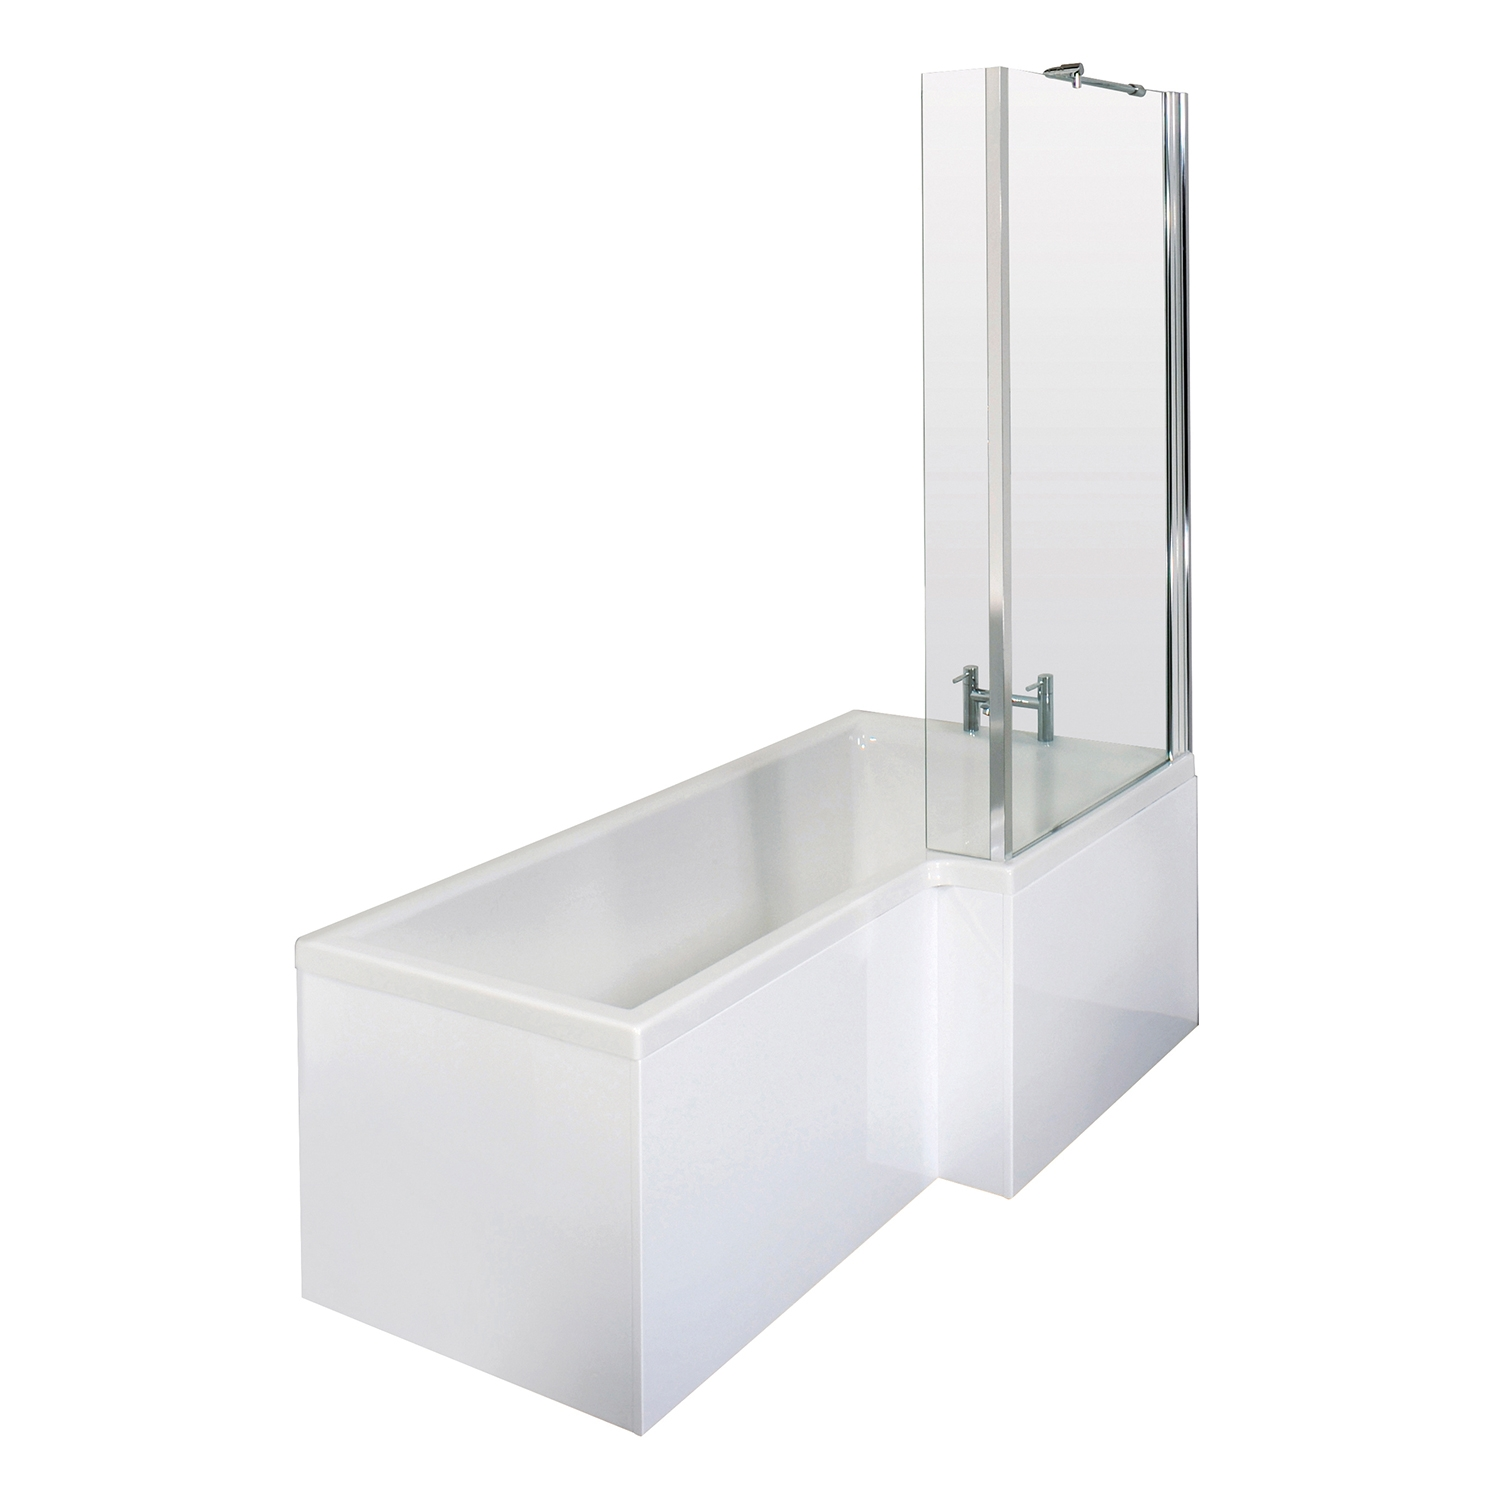 Premier Square L-Shaped Shower Bath with Front Panel and Screen 1700mm x 700mm/850mm Right Handed